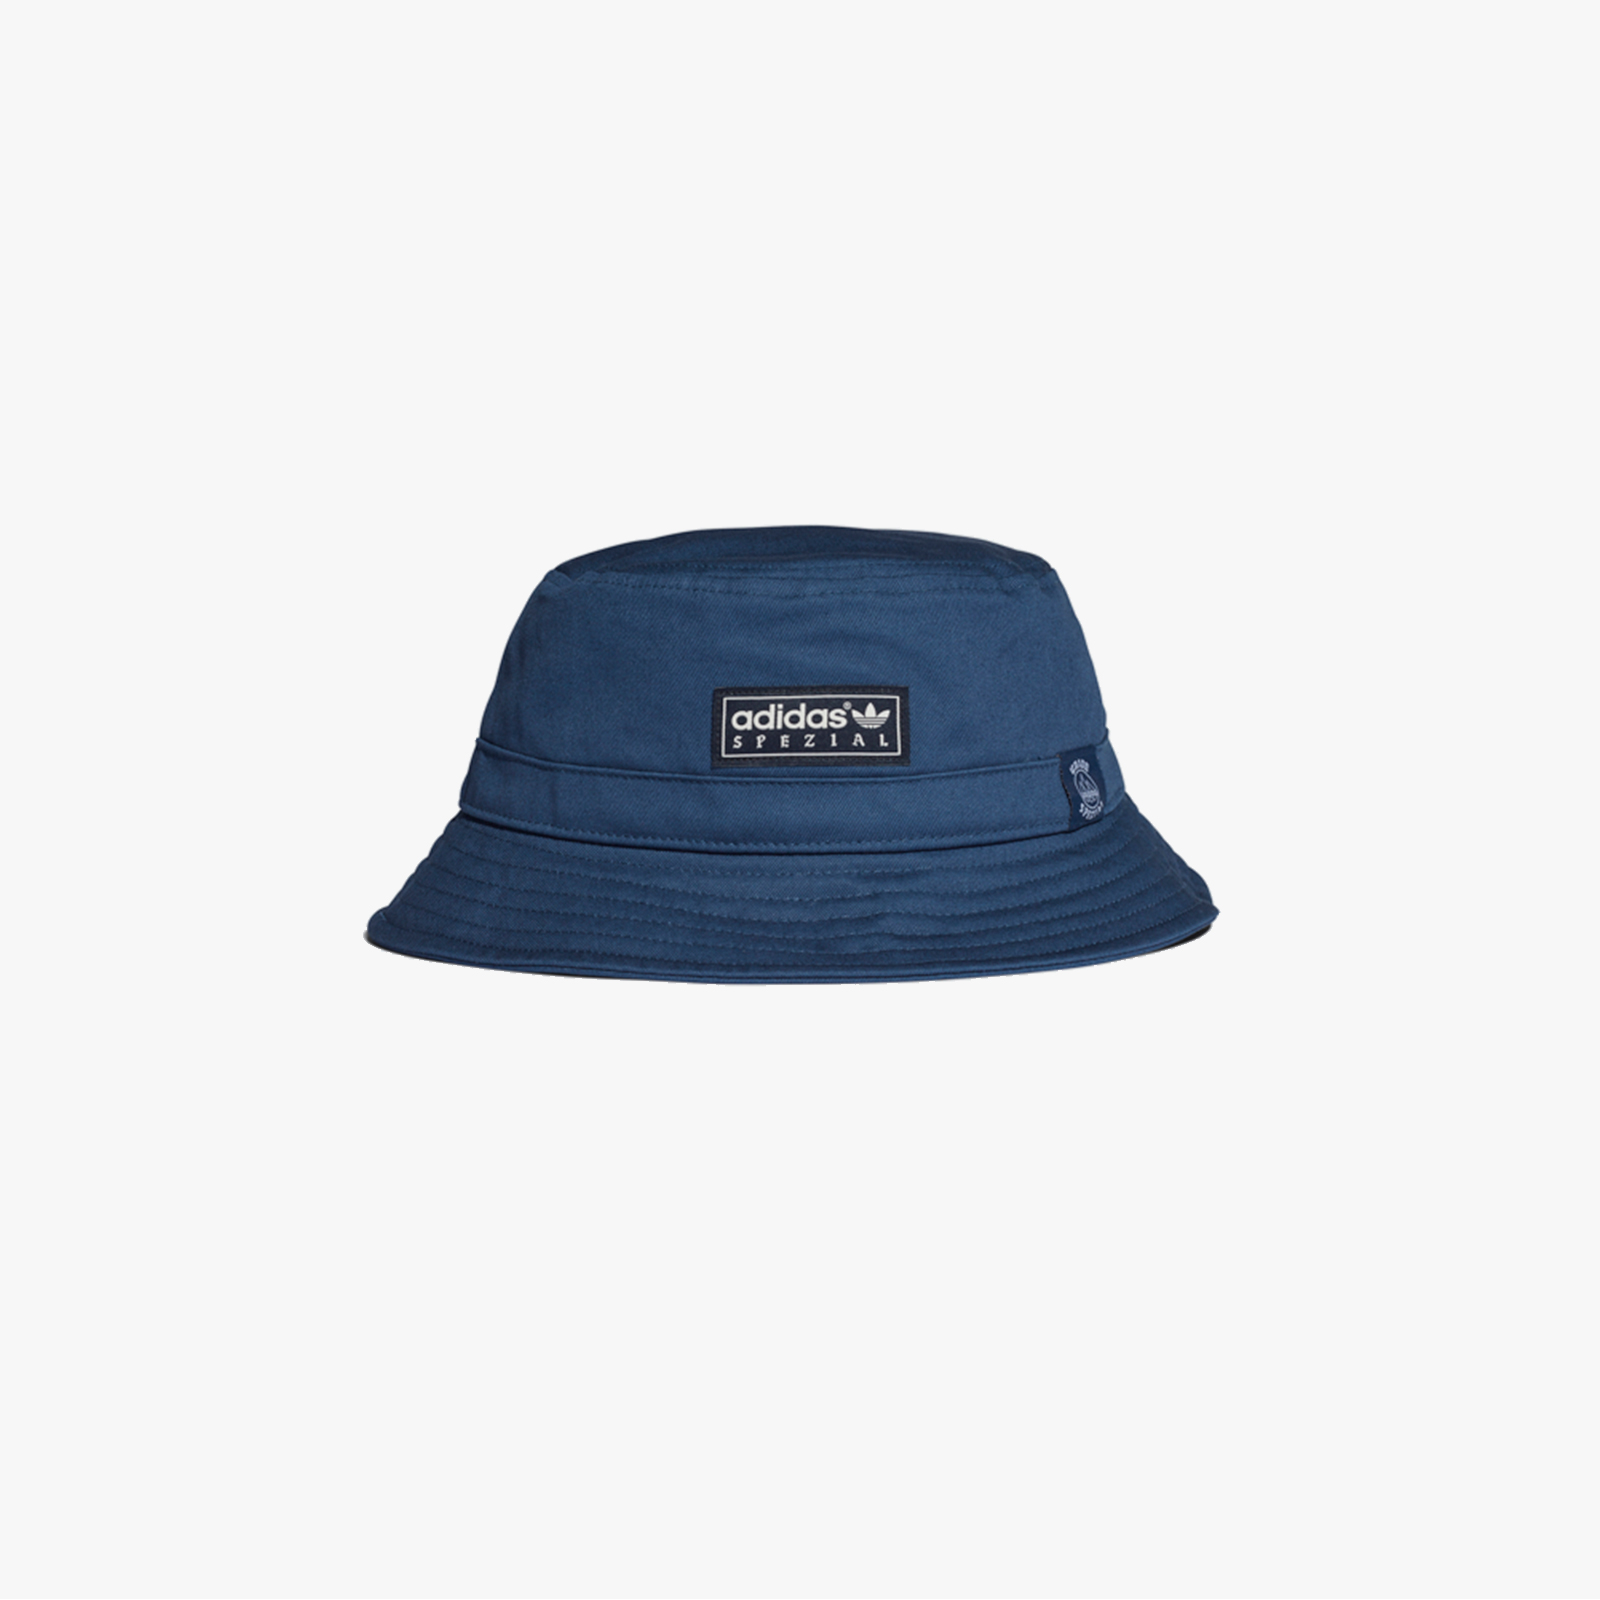 ff19317b26236 adidas Bucket Hat x Union - Dq0115 - Sneakersnstuff